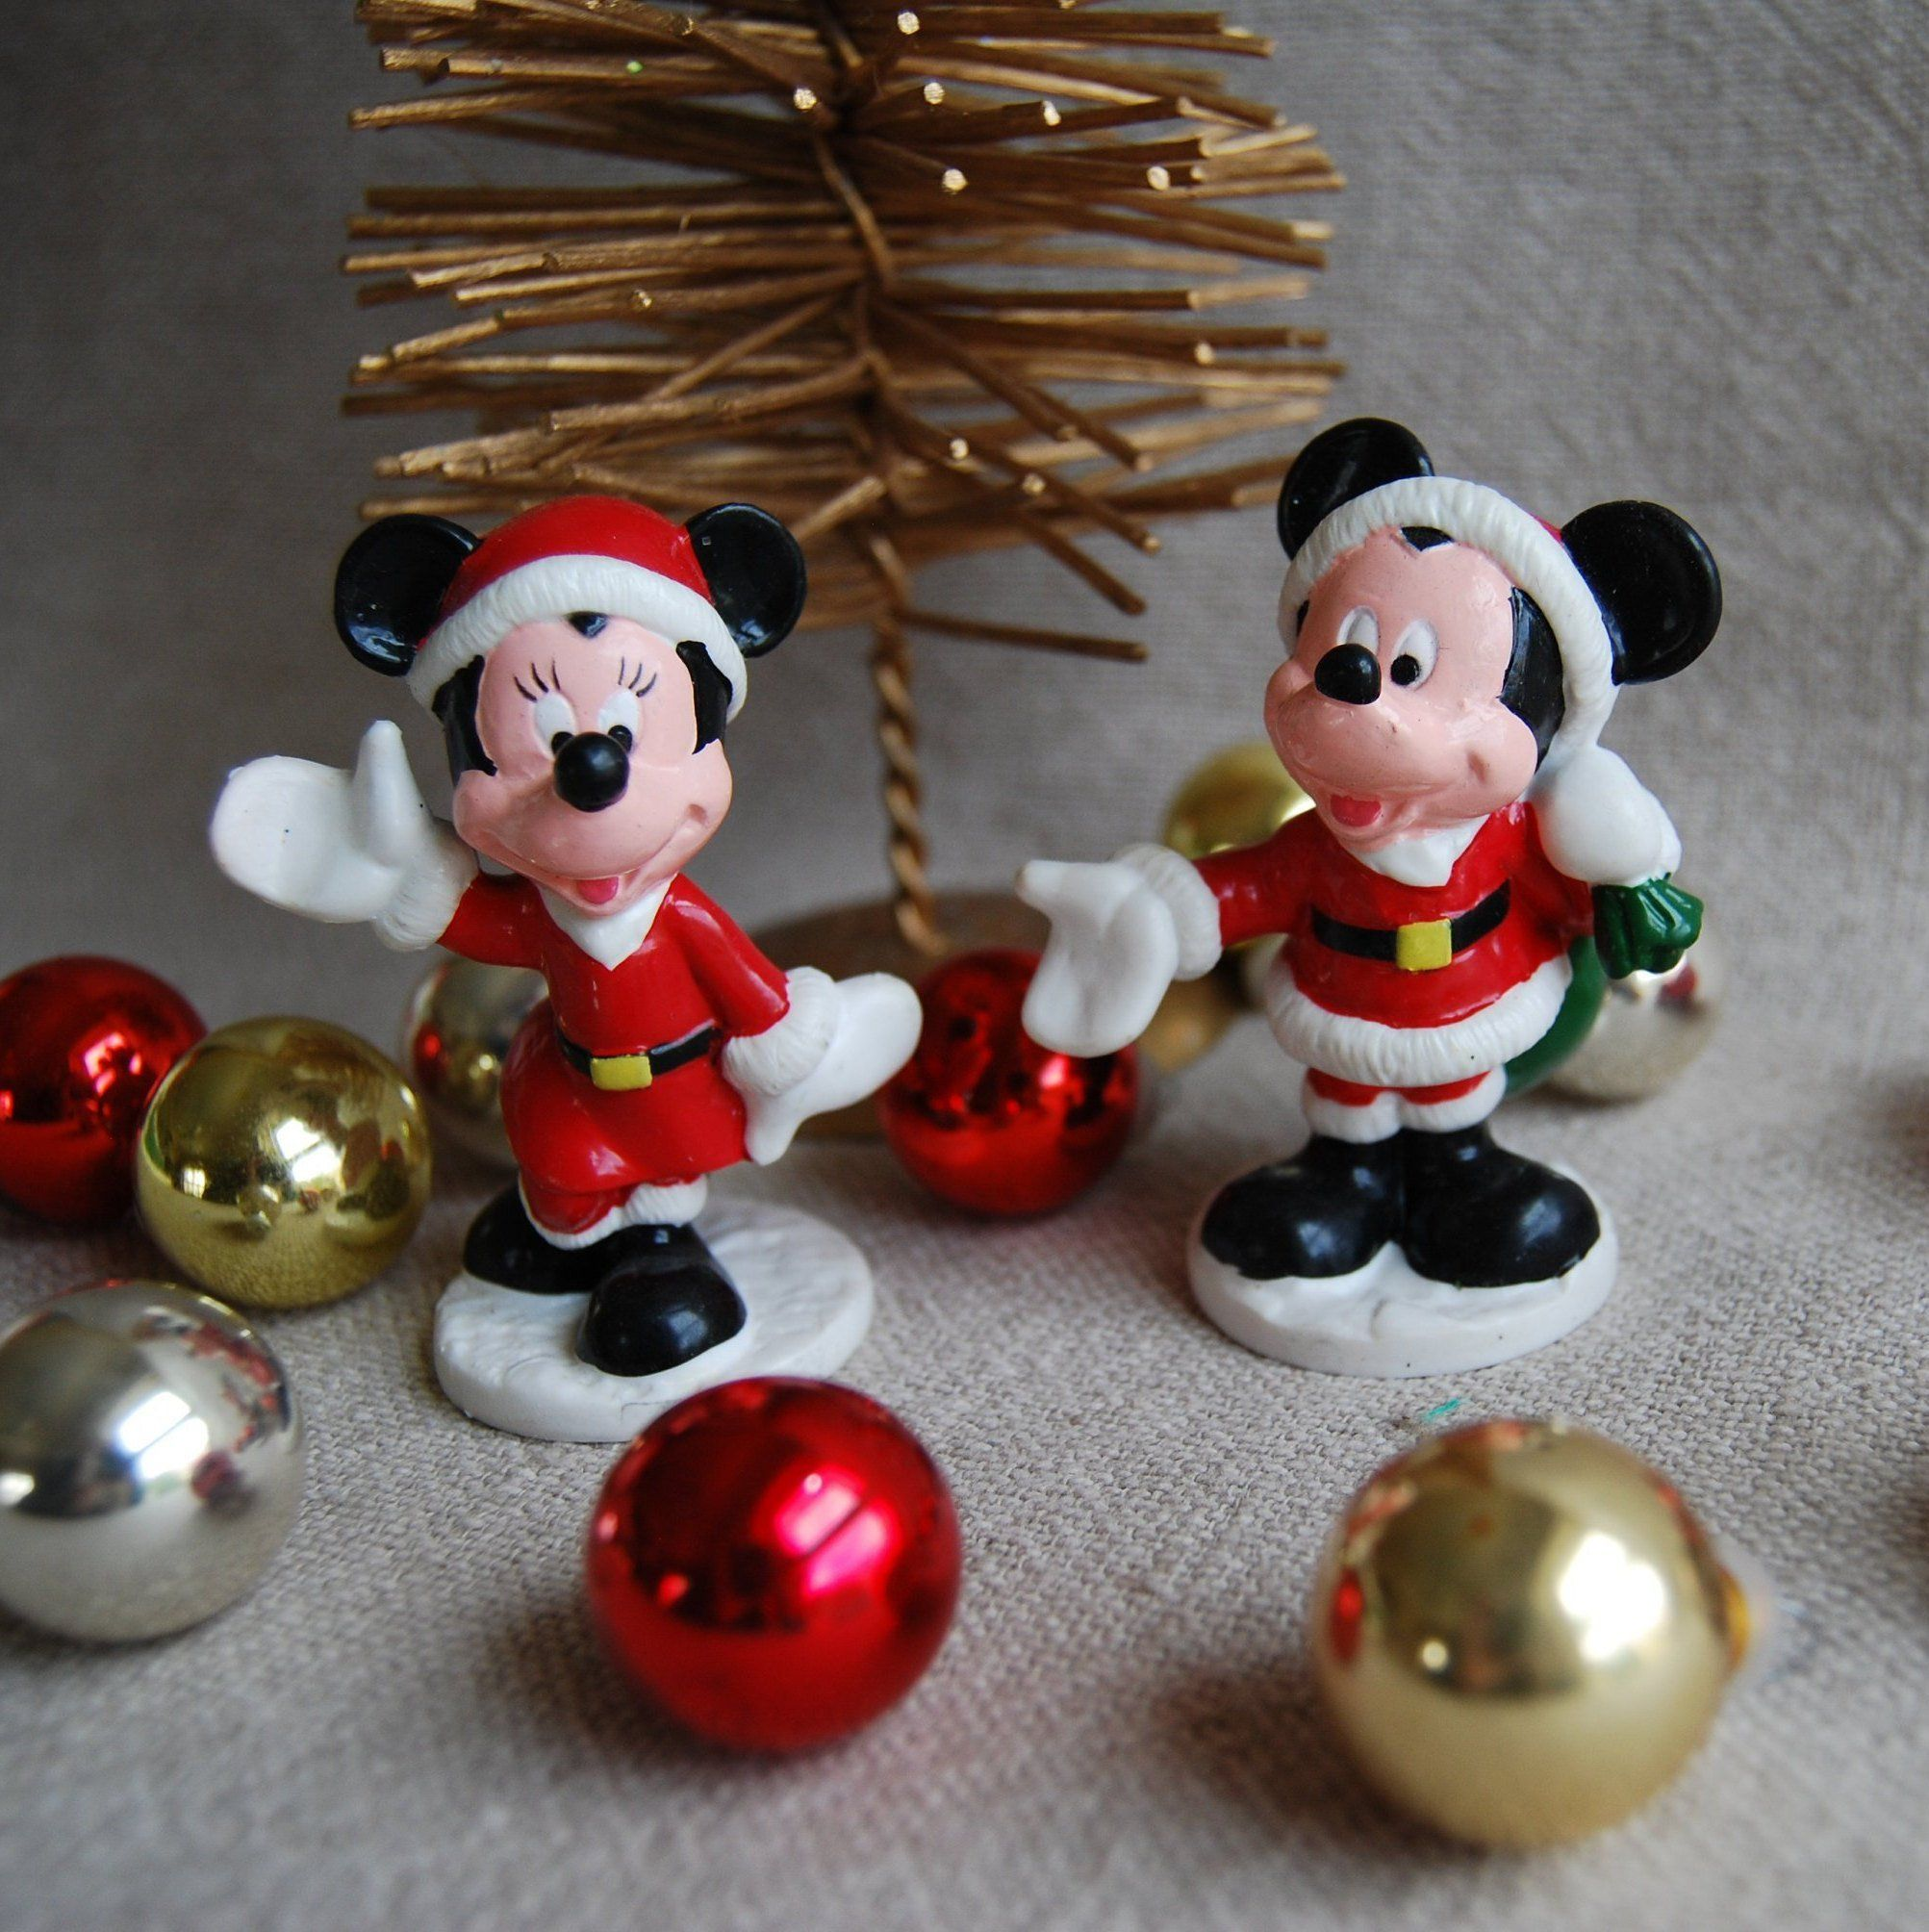 Mickey Mouse Christmas Decor Mickey And Minnie Mouse Collectible Figures Vintage Disney Christ Mickey Mouse And Friends Mickey Mouse Christmas Disney Christmas